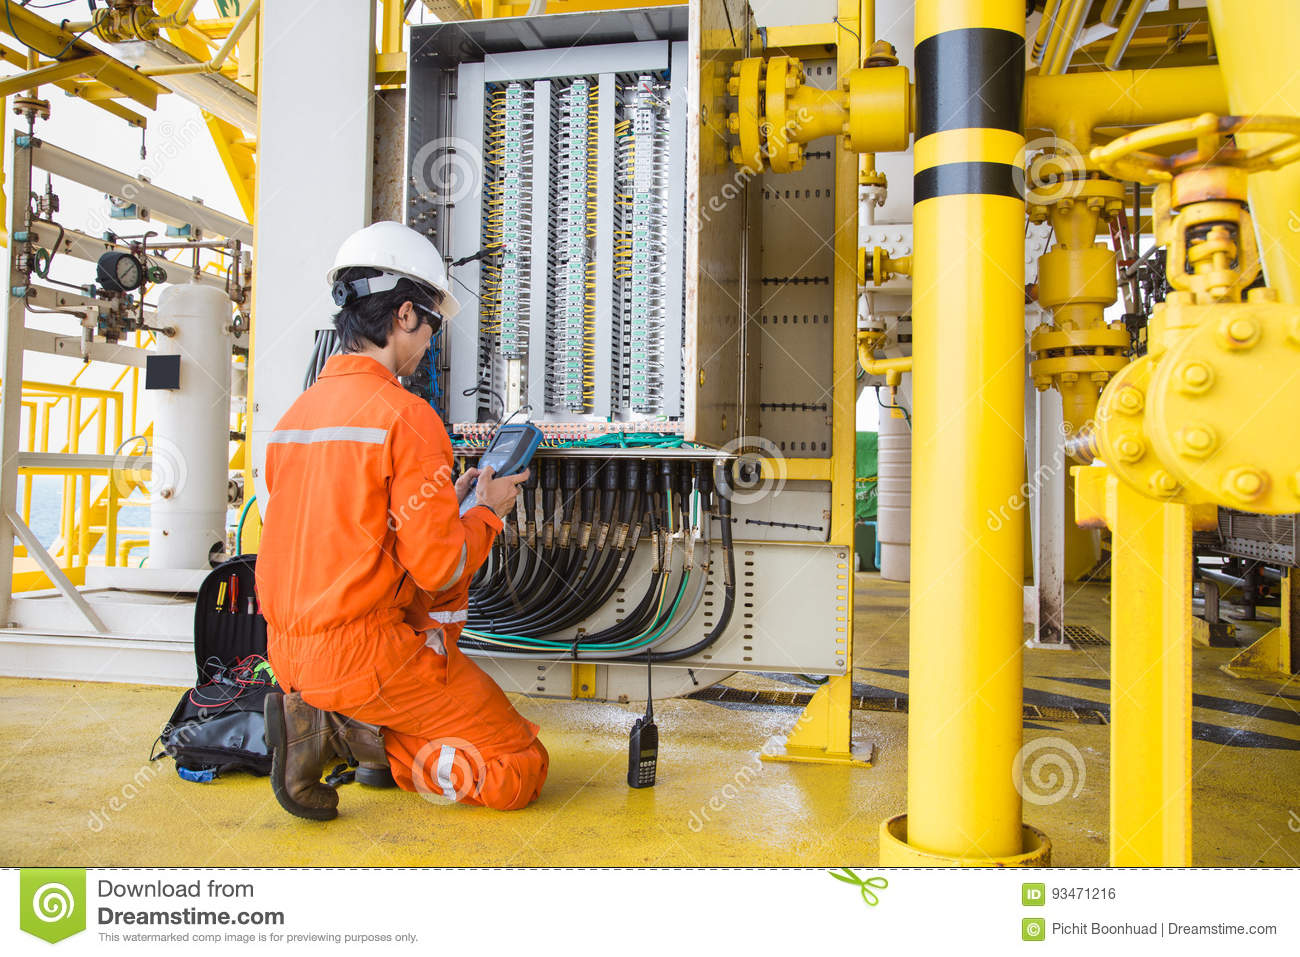 Electrical and instrument technician maintenance electric system at offshore oil and gas processing platform.